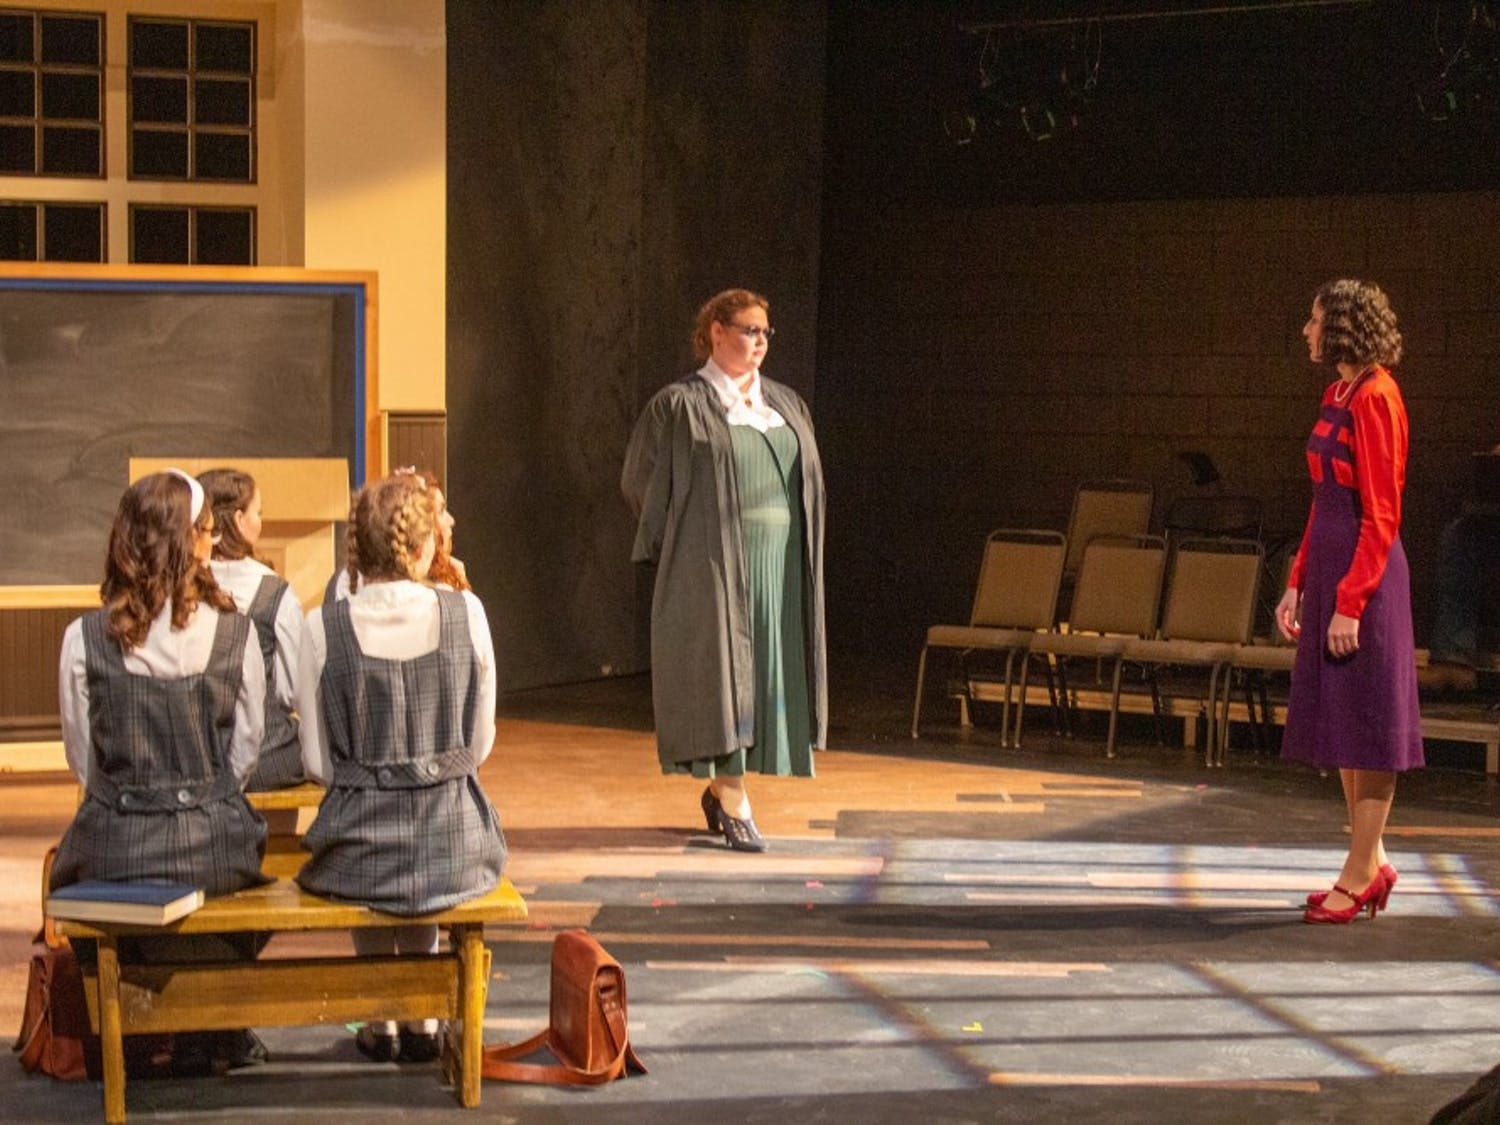 Actors and actresses rehearse their part in The Prime of Miss Jean Brodie on Monday. The rehearsal is in preparation for the opening show in the CFA Black Box Theatre on Wednesday.